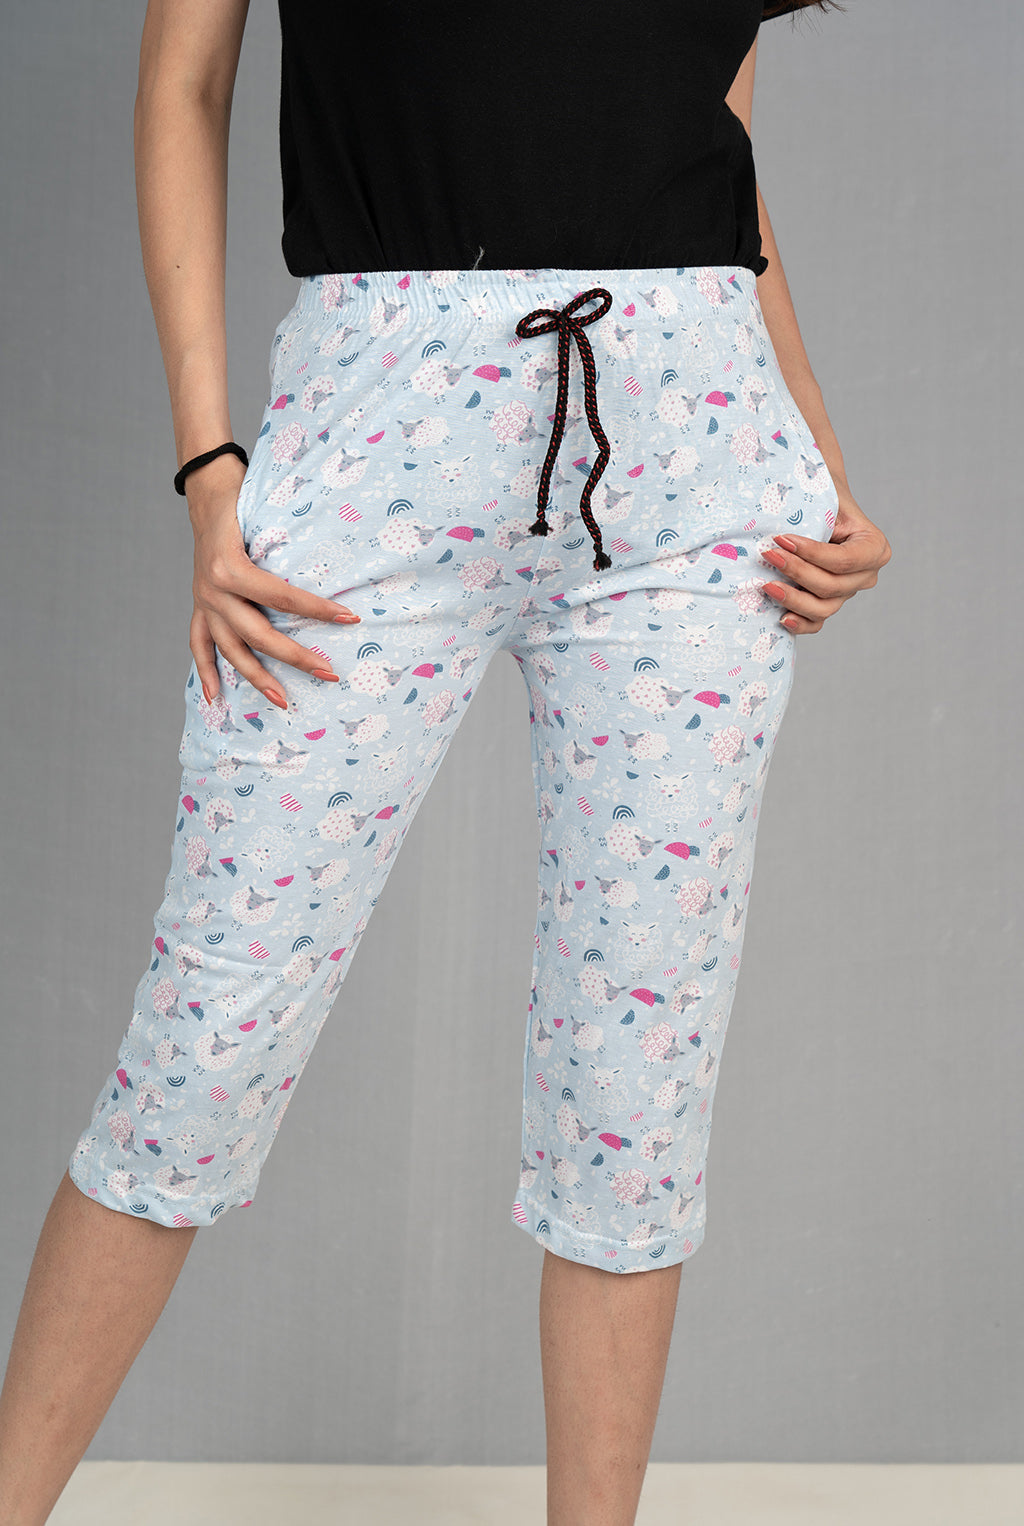 Cute Sheep Printed Capri